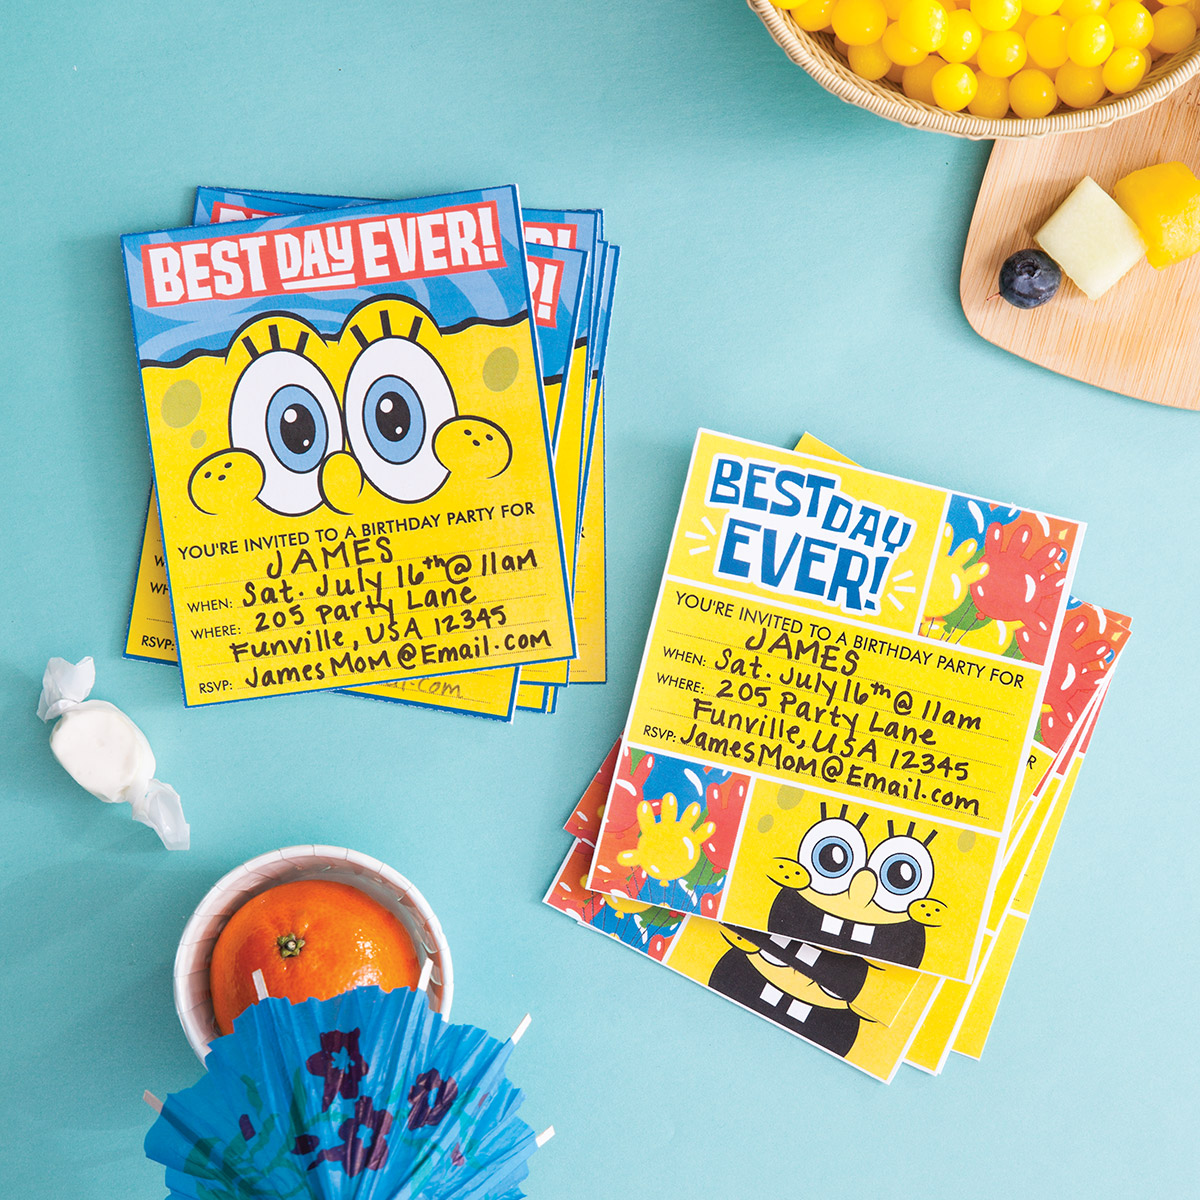 Plan a SpongeBob SquarePants Party – How to Fill out a Birthday Party Invitation